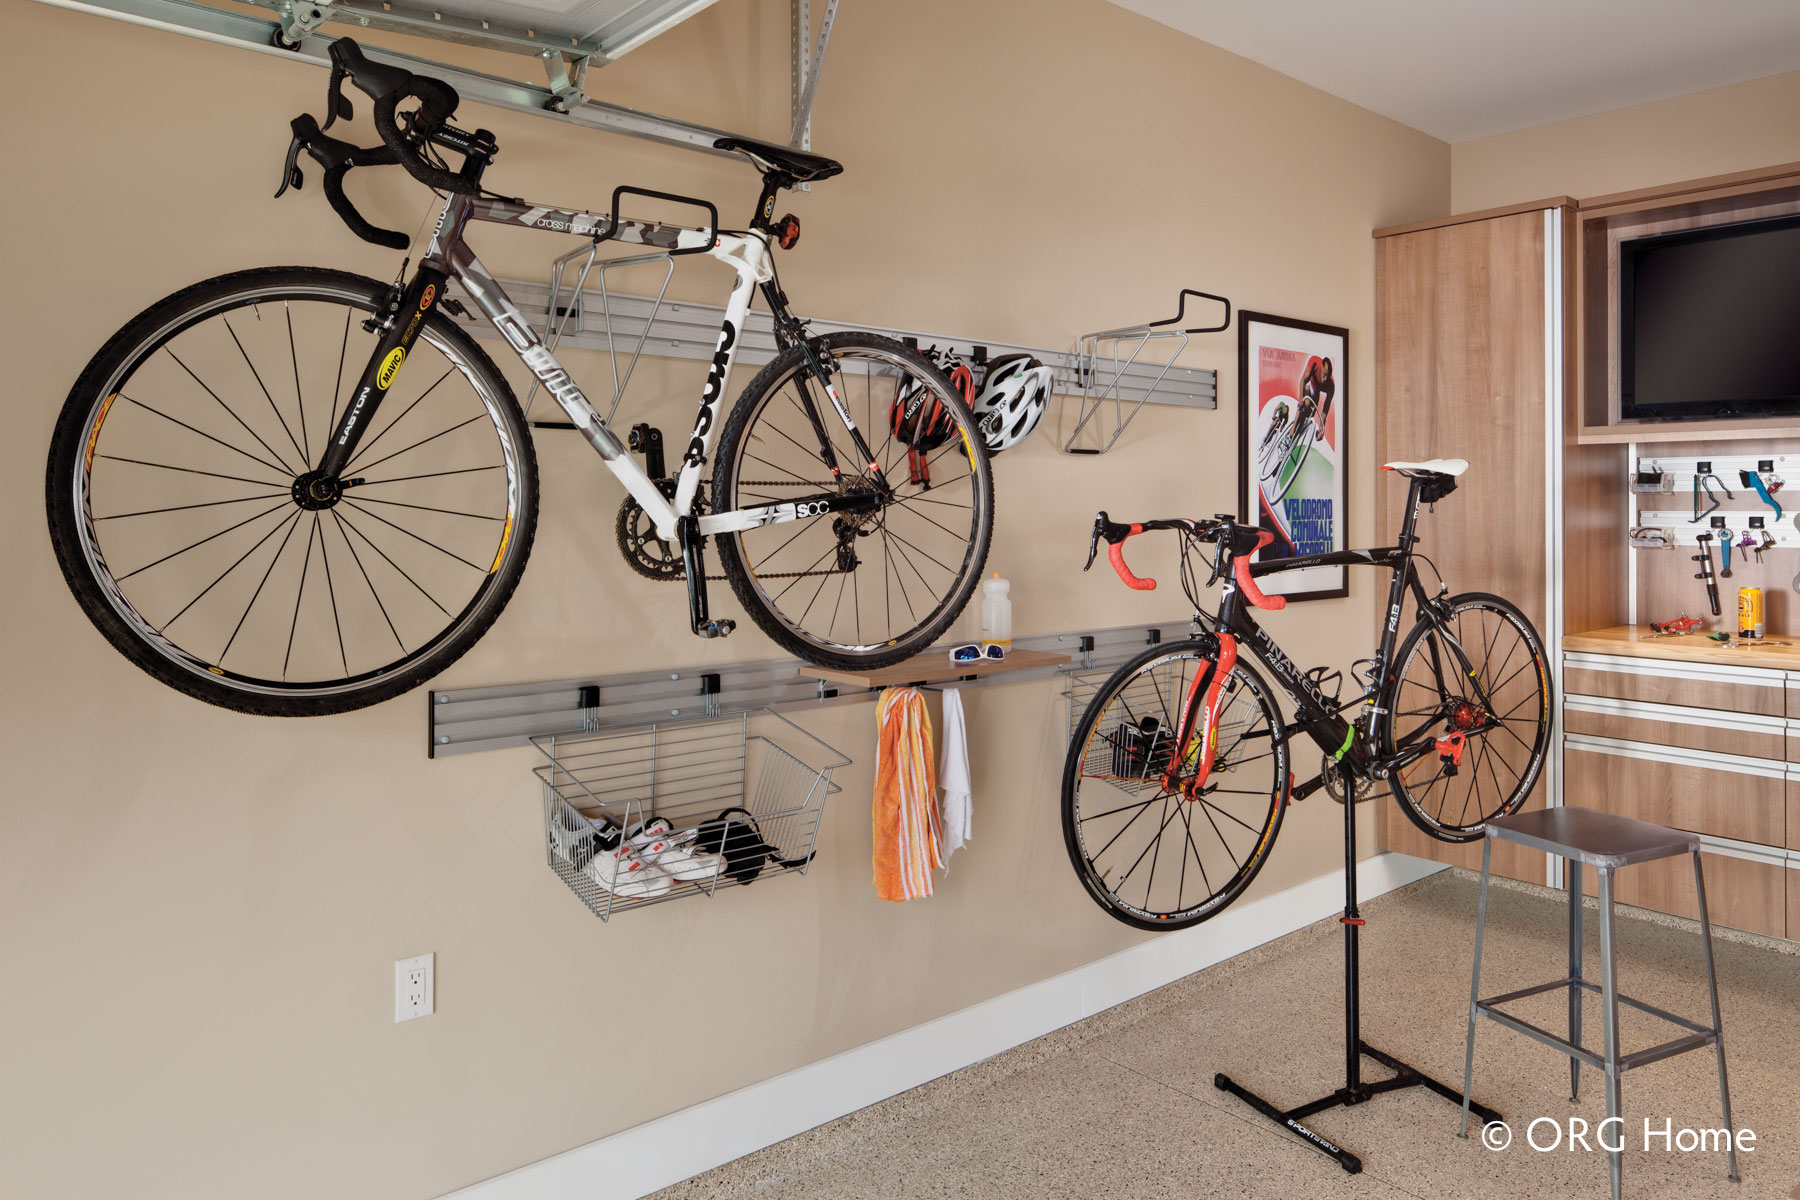 Modular wall-mounted bike hooks